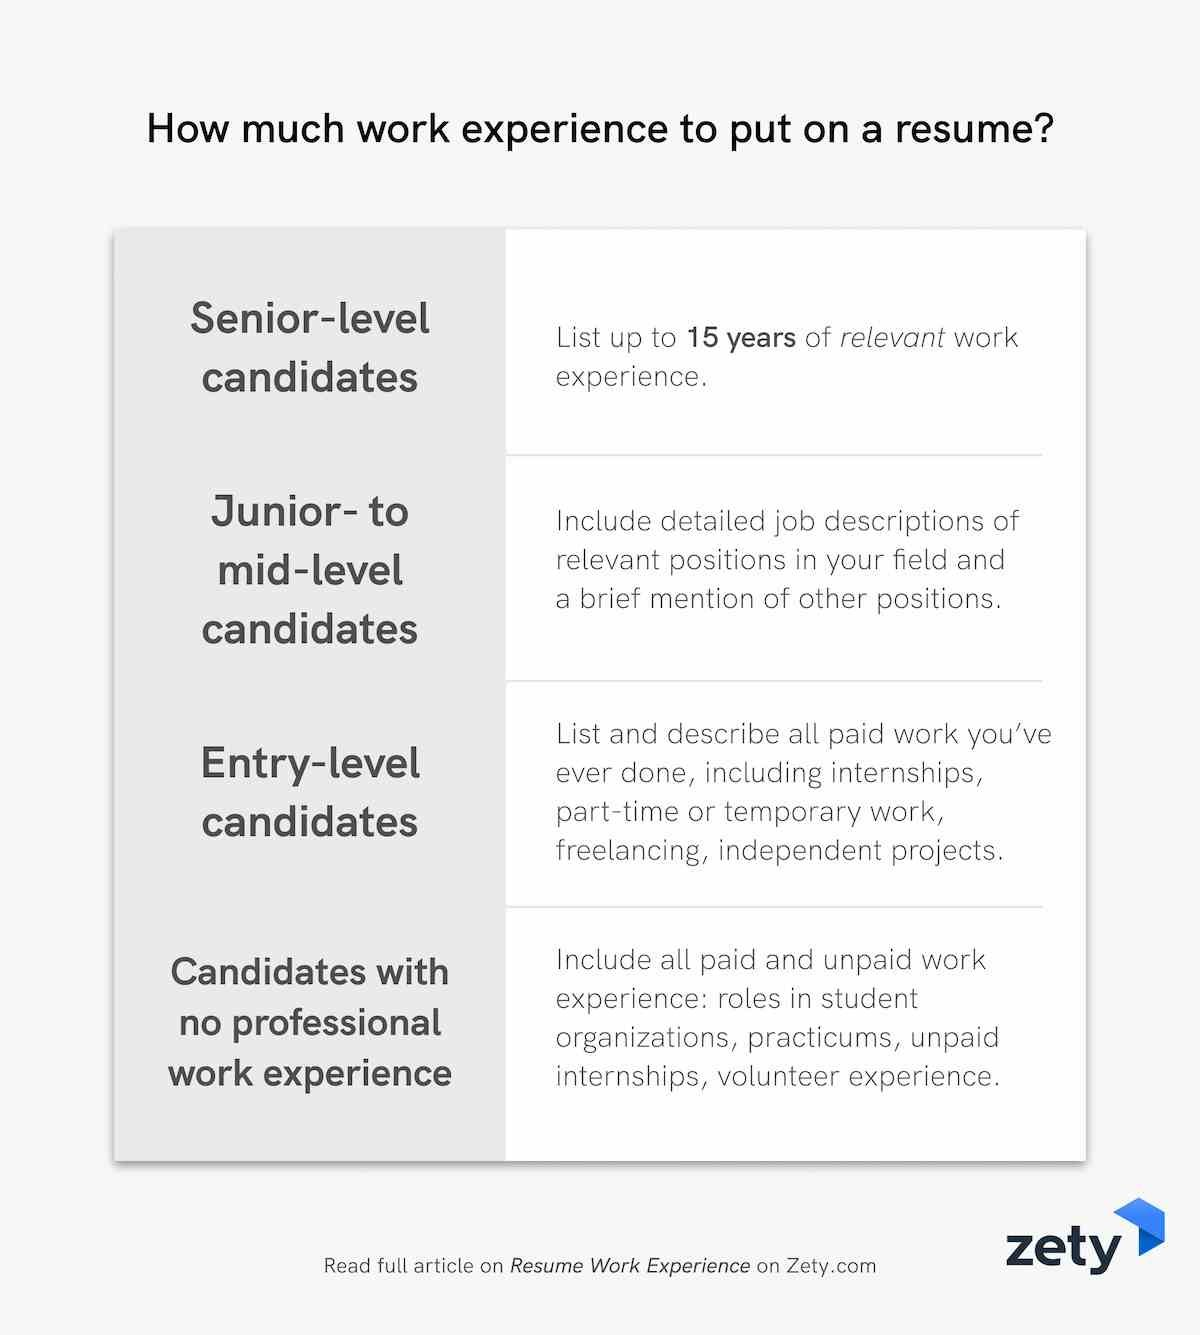 resume work experience history example job descriptions bullet points much to put on Resume Resume Job Bullet Points